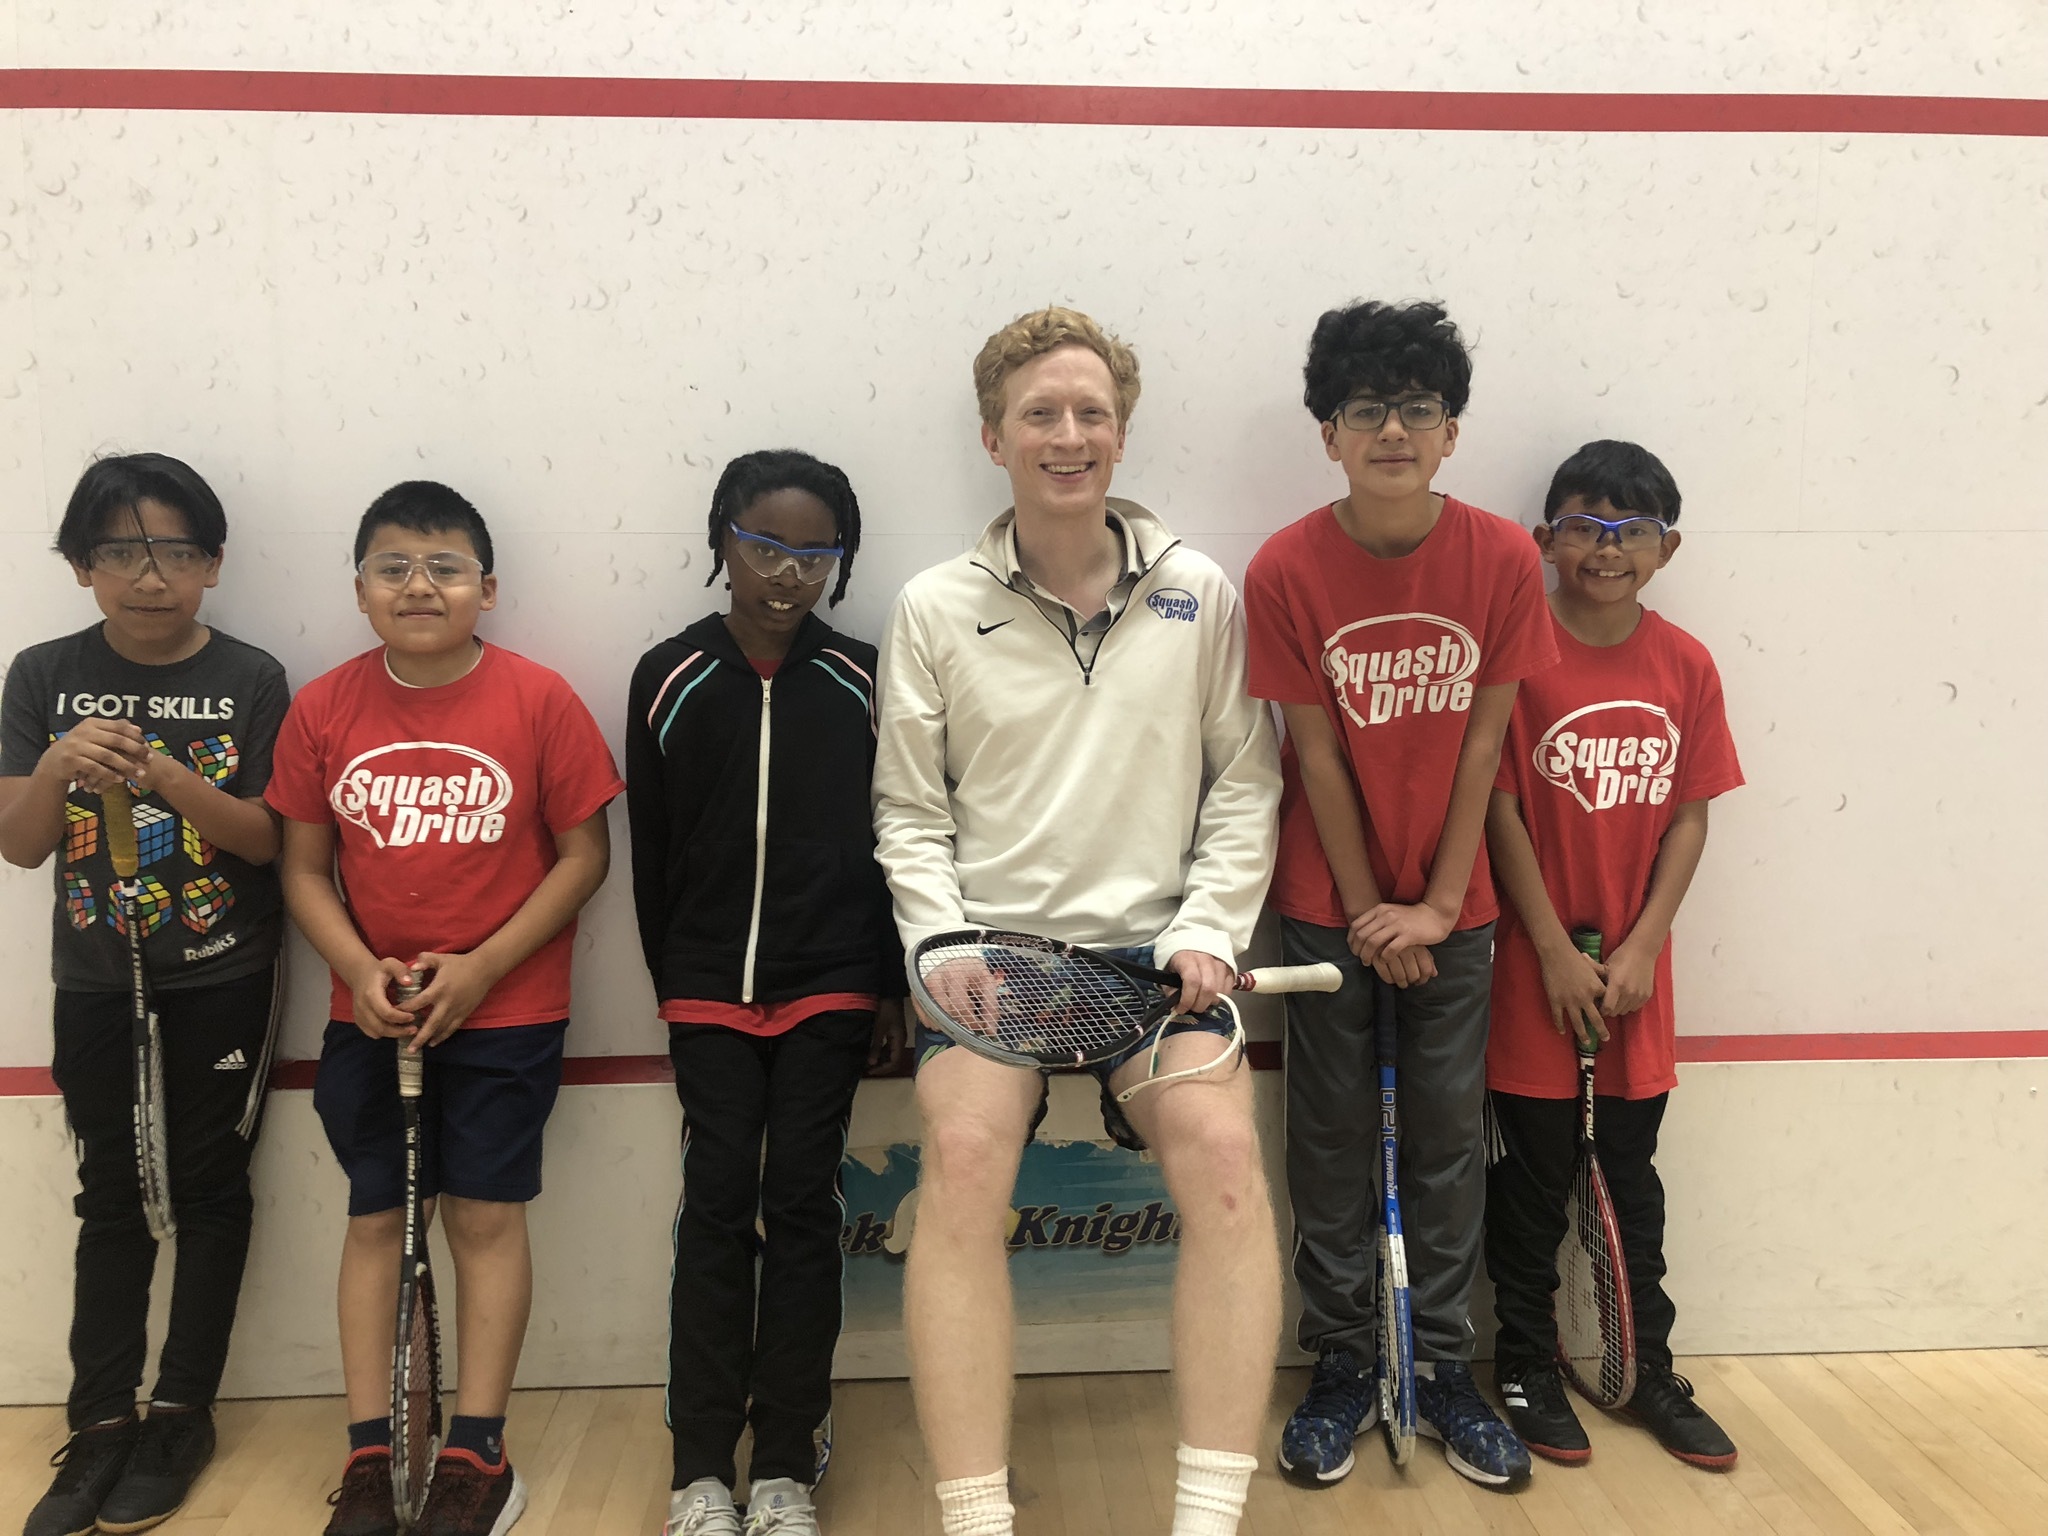 Dedicated volunteer, Peter, pictured with some of our students during squash practice!